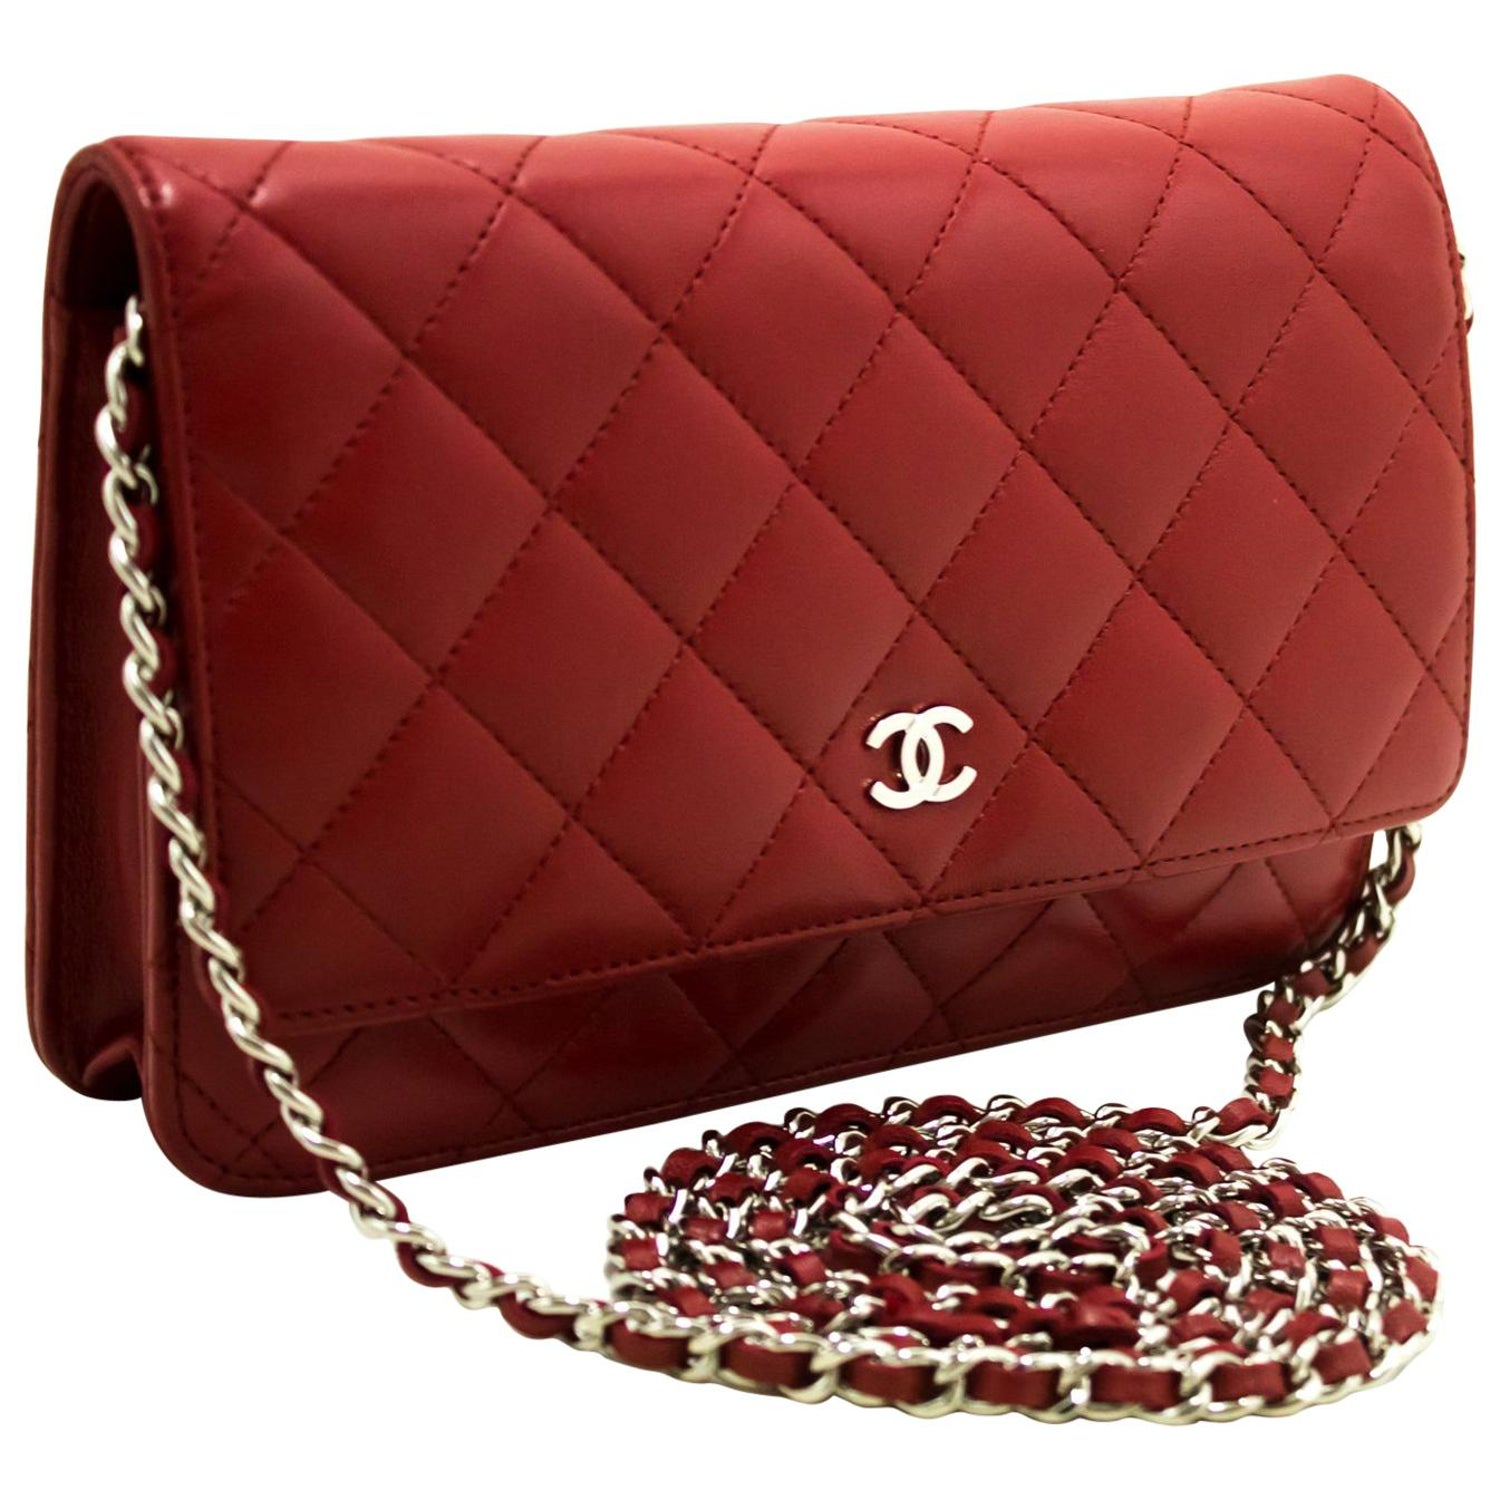 b8e4487ce931 Chanel Red Wallet On Chain Crossbody Clutch Lamb Shoulder Bag For Sale at  1stdibs